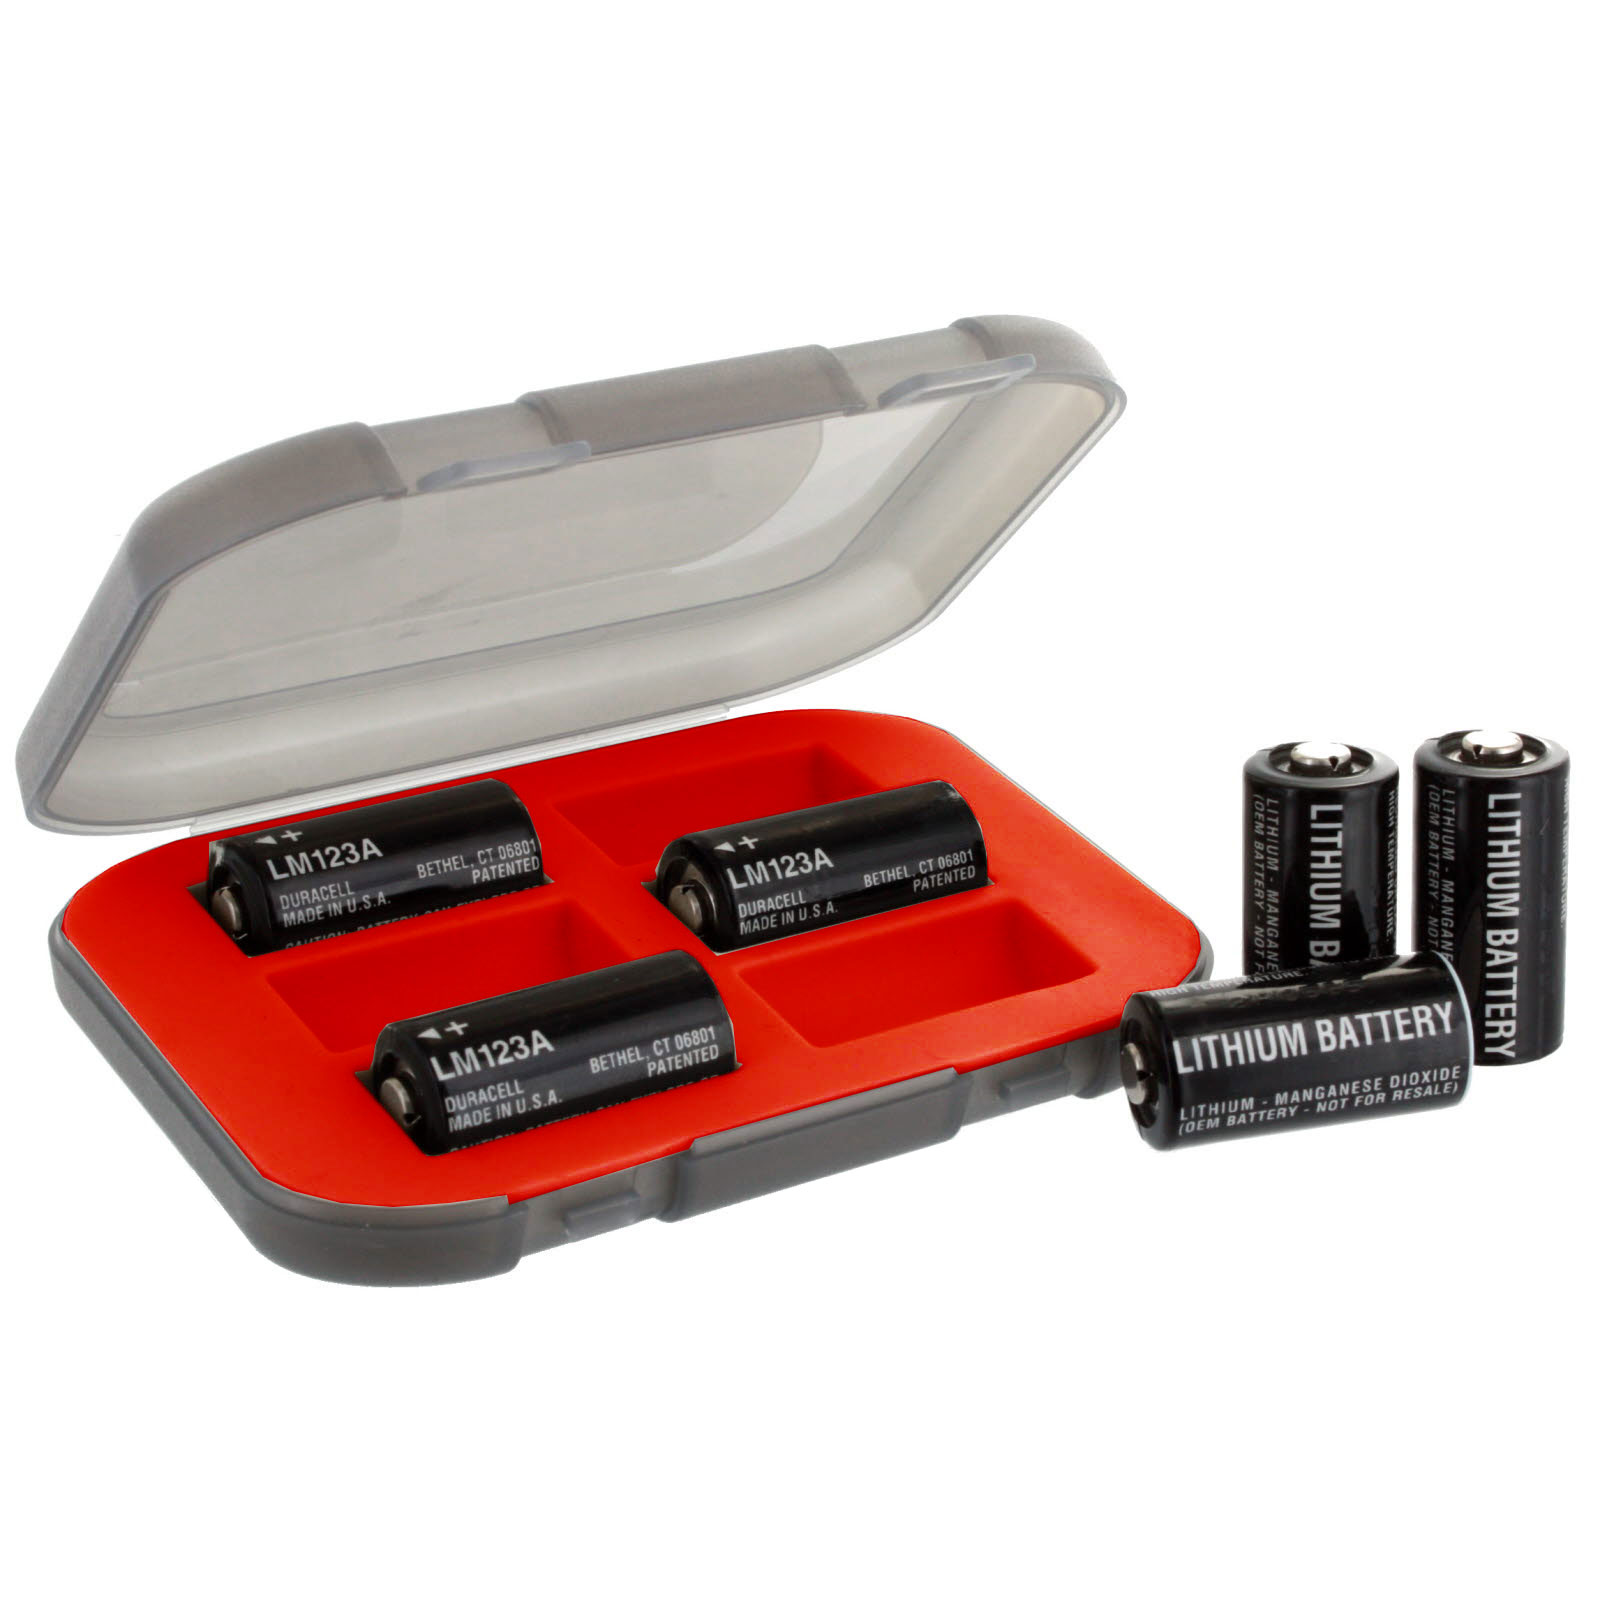 cr123 combo 6 x cr 123 exell lithium batteries w case fast usa ship ebay. Black Bedroom Furniture Sets. Home Design Ideas